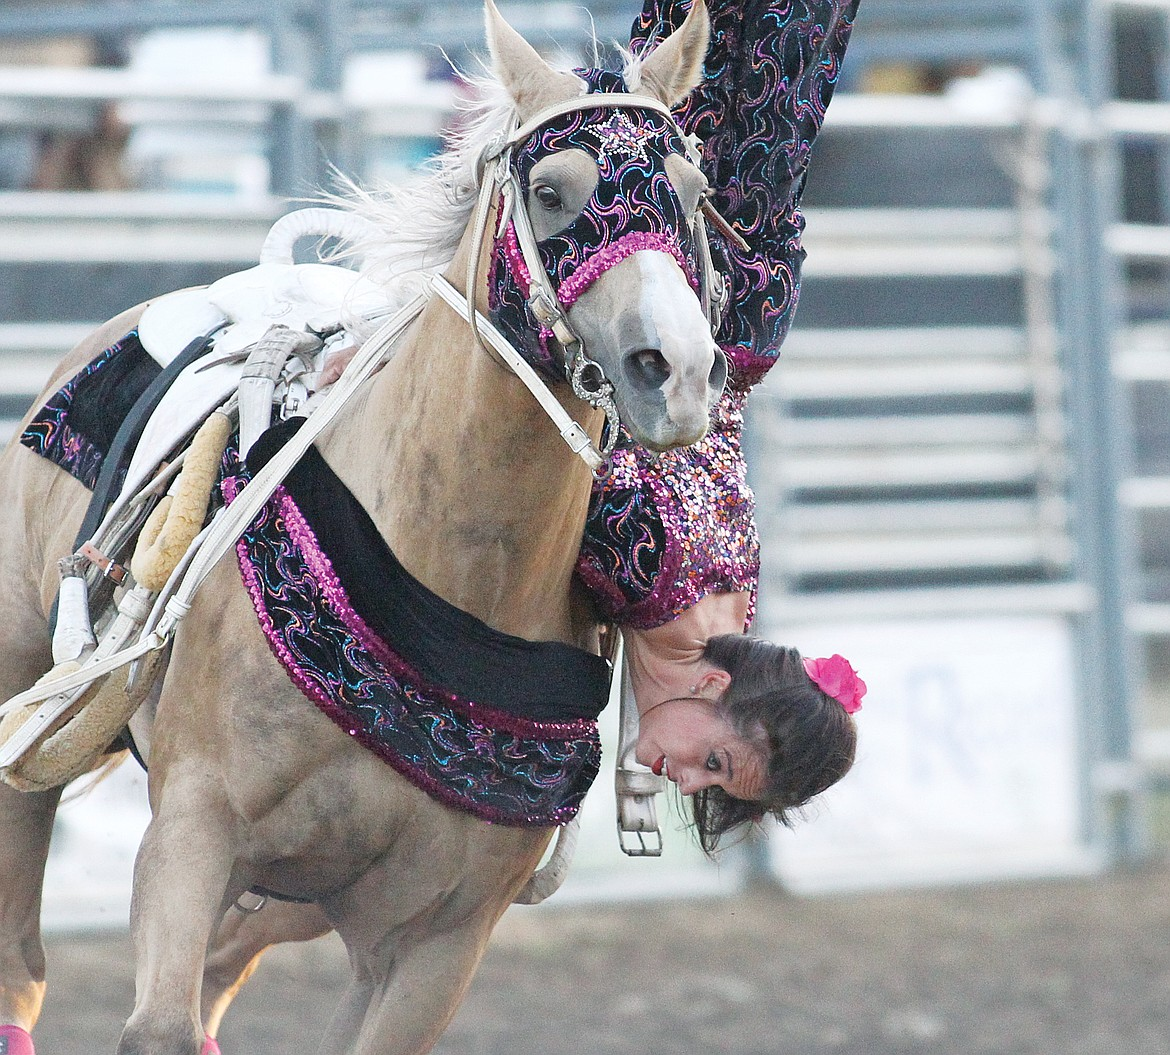 Madison MacDonald-Thomas knew she wanted to become a trick rider at a young age and has perservered through serious injuries. (Paul Sievers/The Western News)